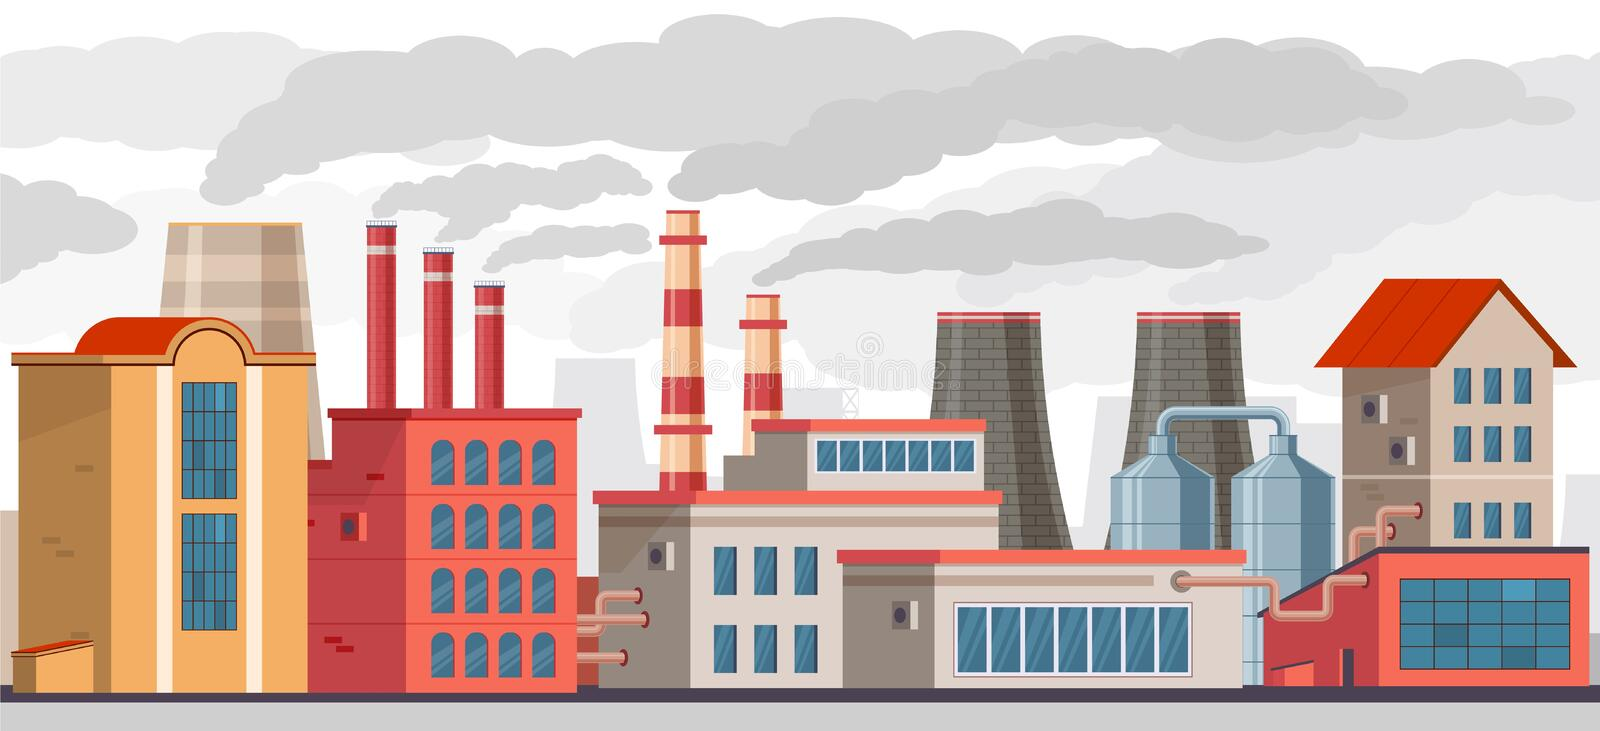 Smog pollution. Industrial factory with pipes pollutes environment with toxic smoke. Smog and chemical waste in ecology vector illustration